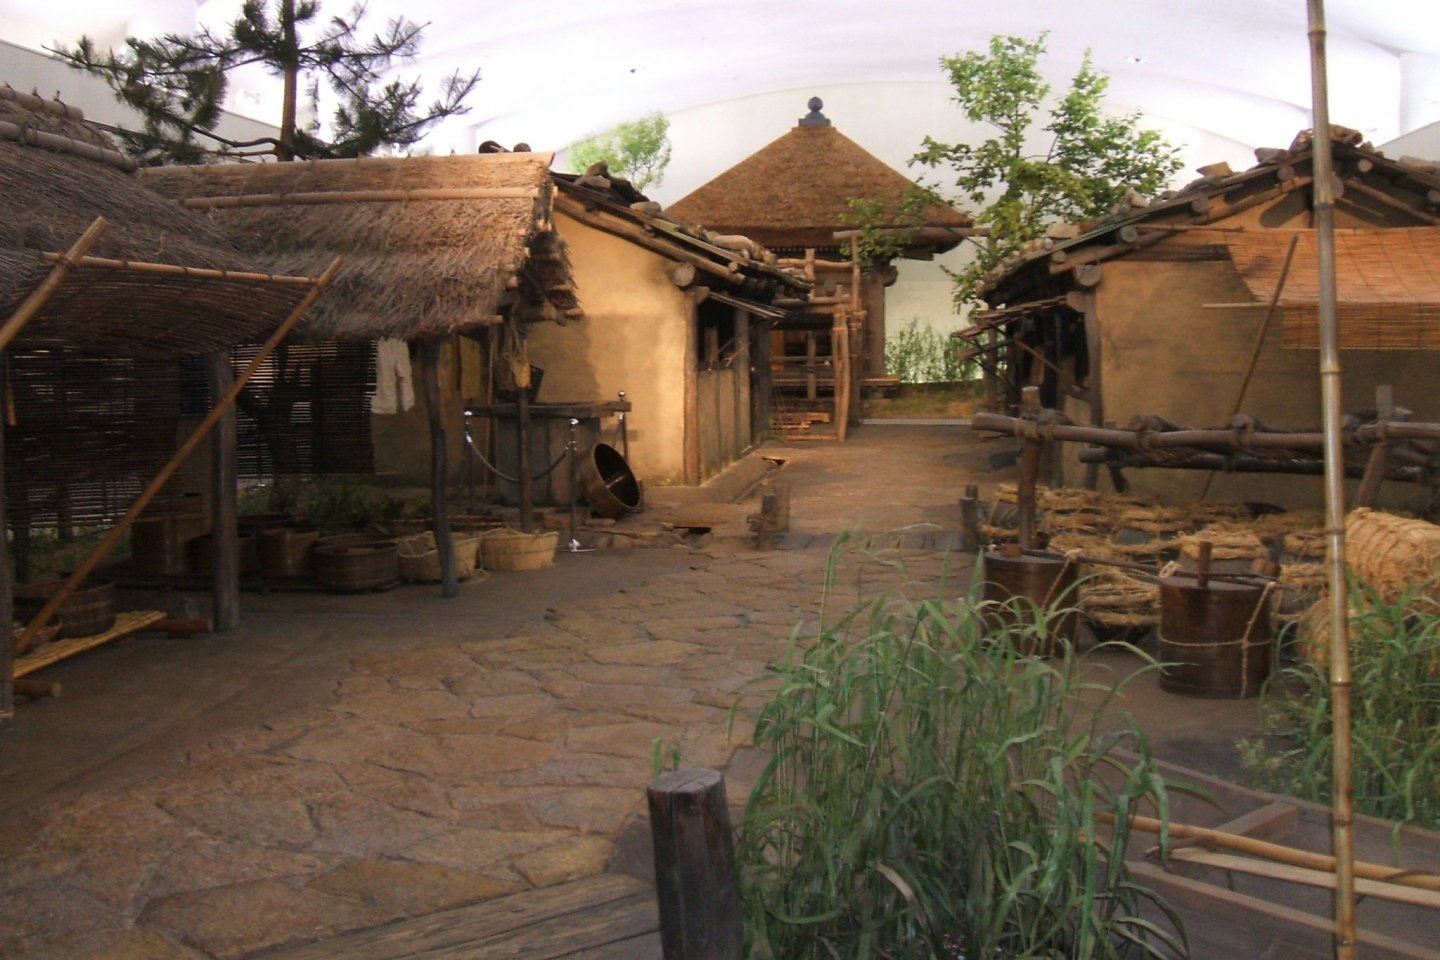 A Reconstruction of the Kusado Sengen-cho site at the Hiroshima Prefectural Museum of History